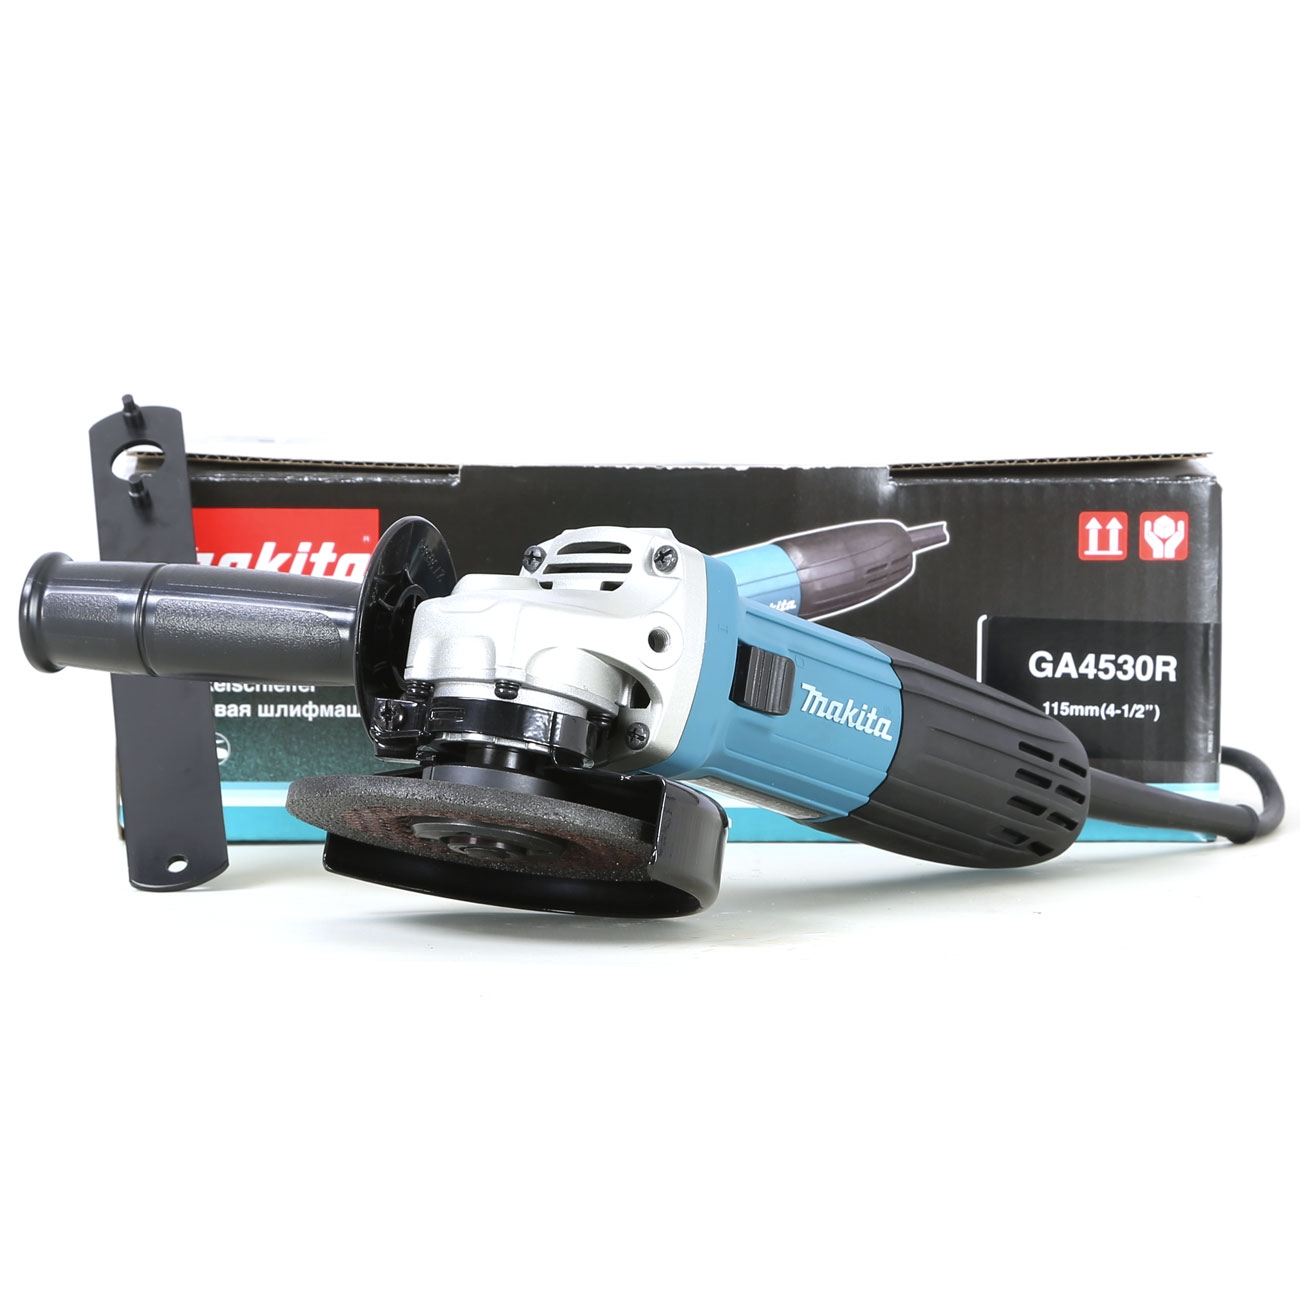 makita ga4530r smerigliatrice angolare 115mm con antiriavvio flex 720 w 240 v ebay. Black Bedroom Furniture Sets. Home Design Ideas